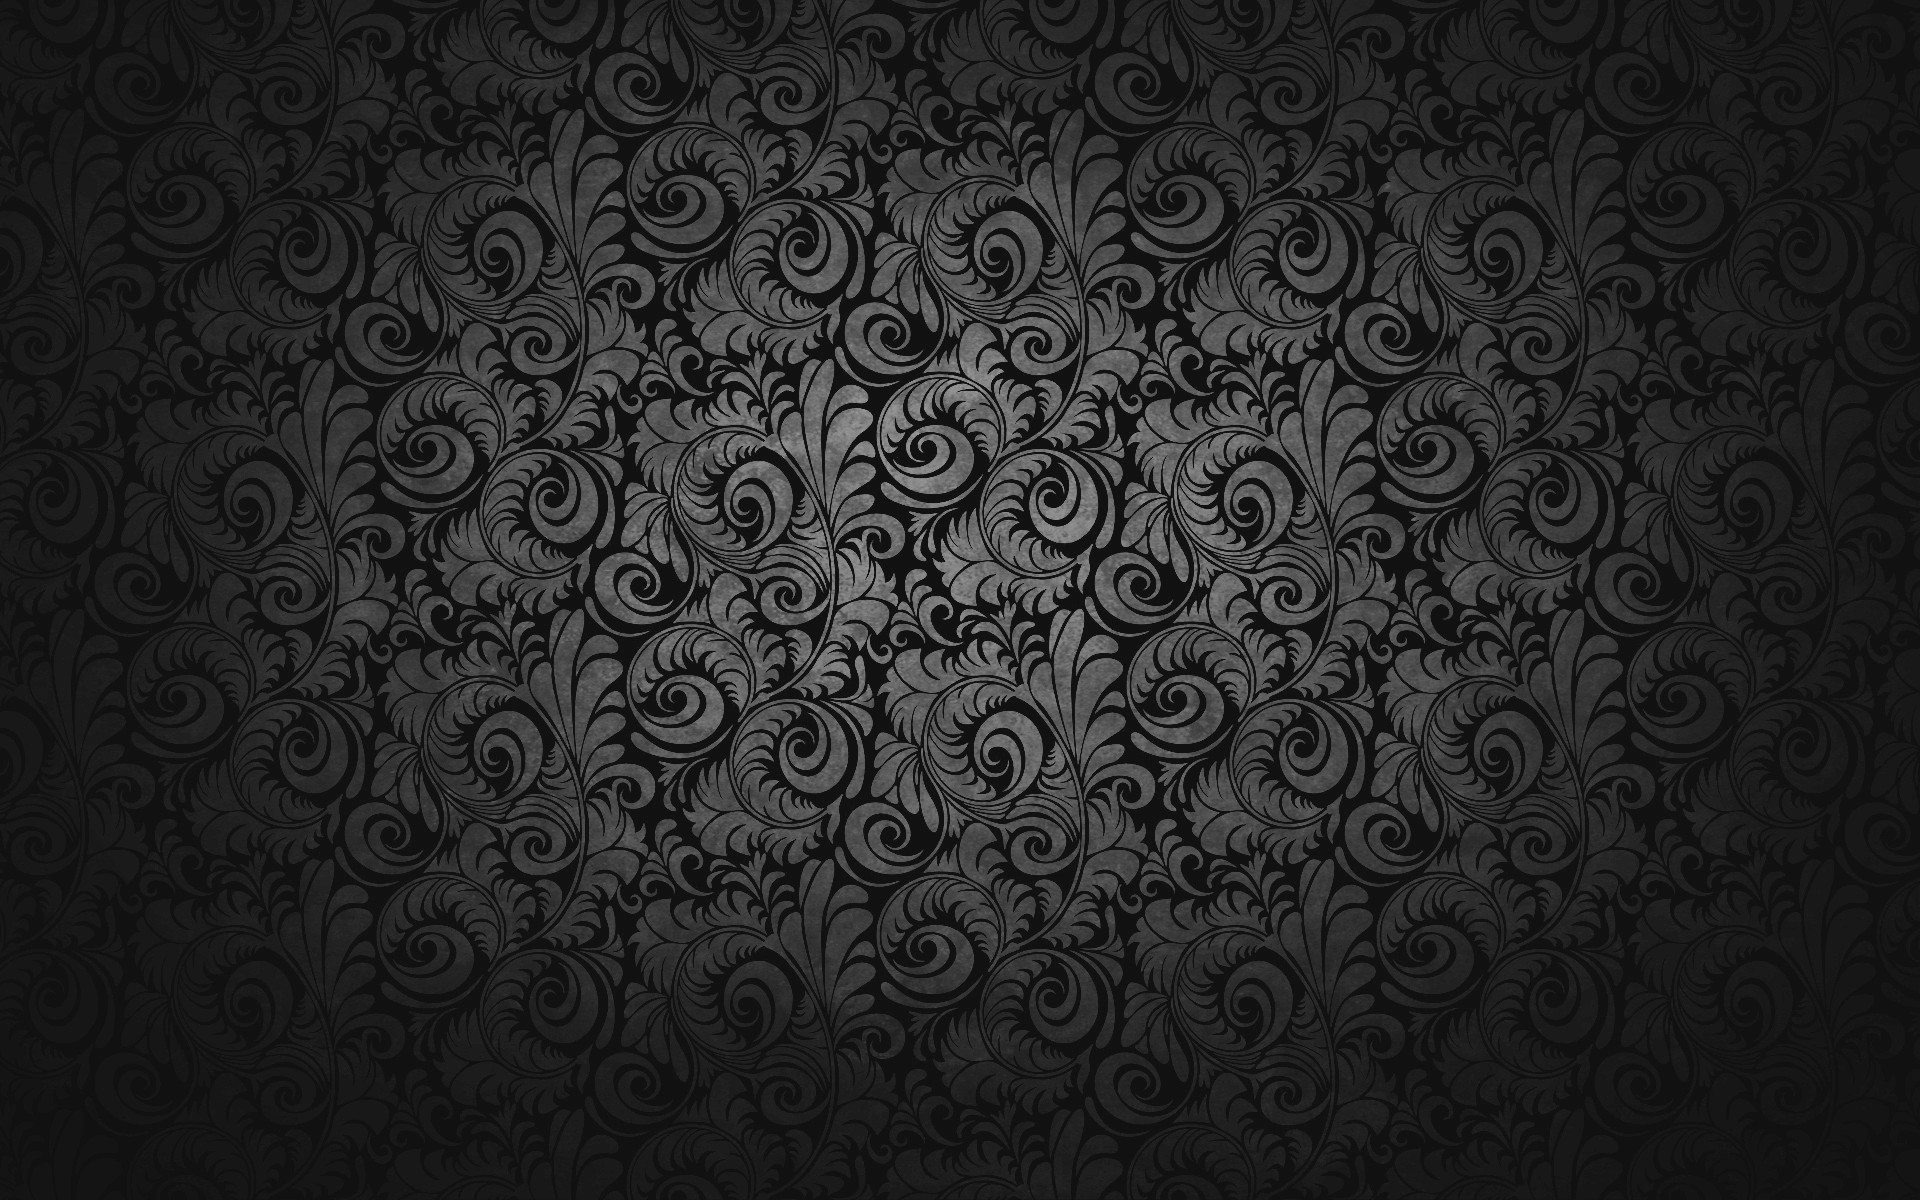 1920x1200 Page : Full HD p Textures Wallpapers, Desktop Backgrounds HD Textured Wallpapers  HD Wallpapers)